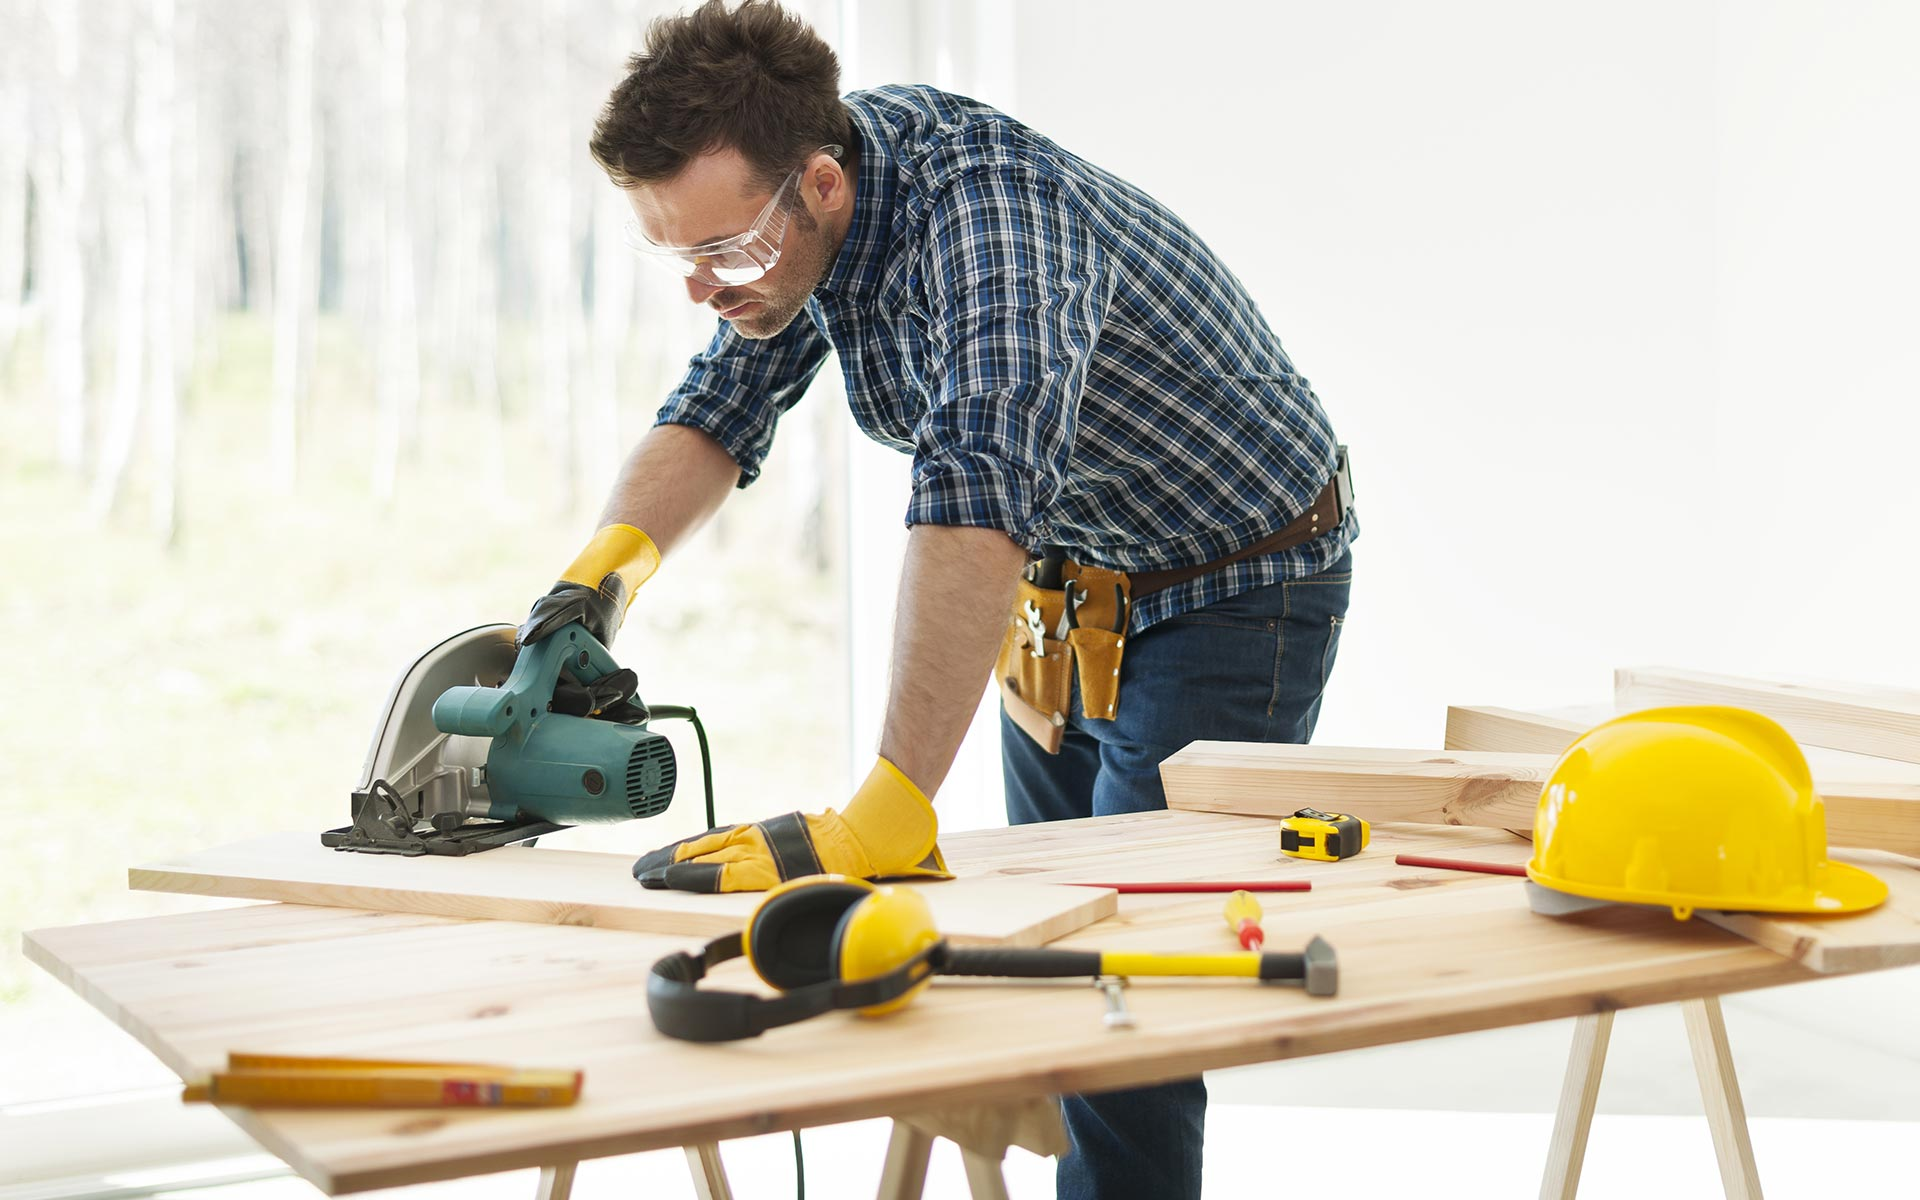 WELCOME TO ONYX